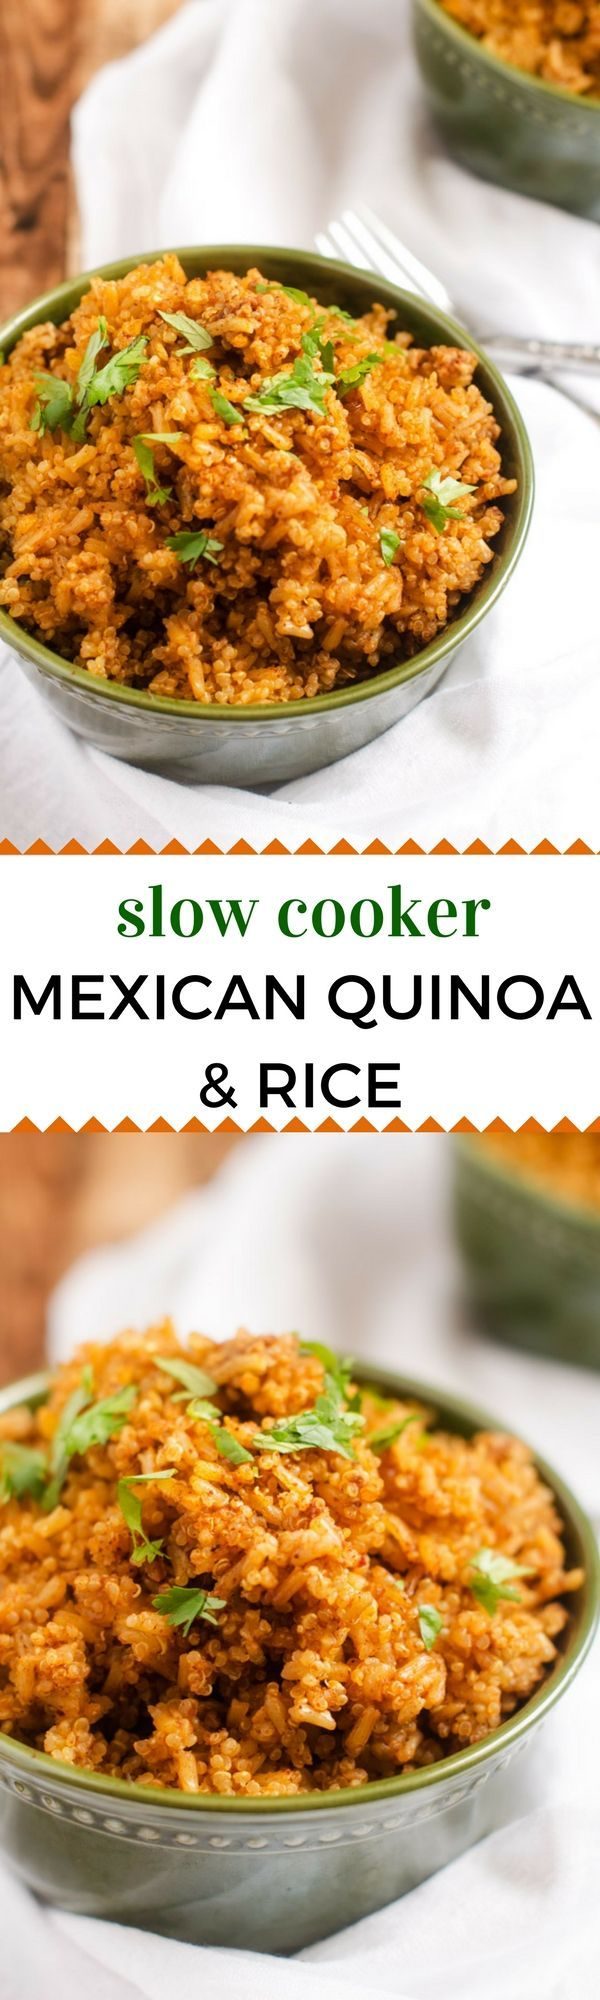 Slow Cooker Mexican Quinoa & Rice - This Slow Cooker Mexican Quinoa & Rice is a healthy and easy vegan side dish that even the most…